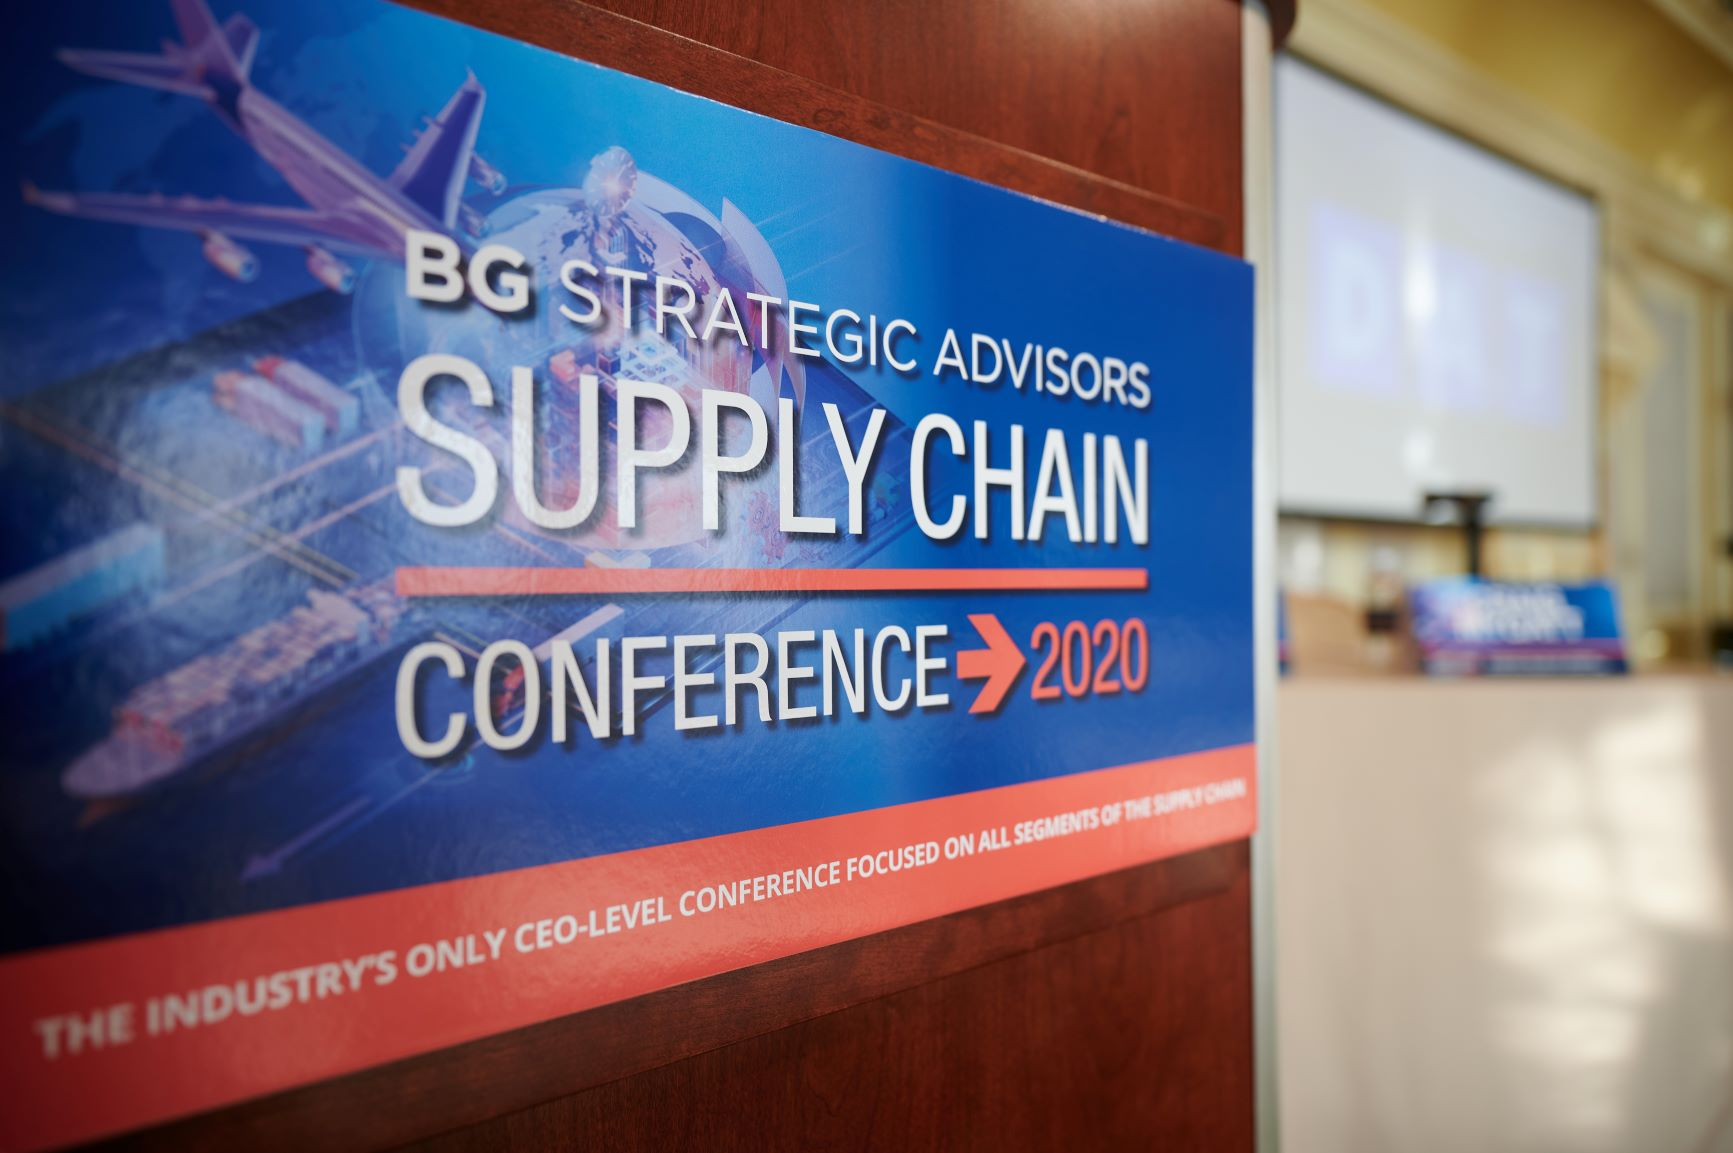 BGSA Supply Chain Conference, Benjamin Gordon, Palm Beach